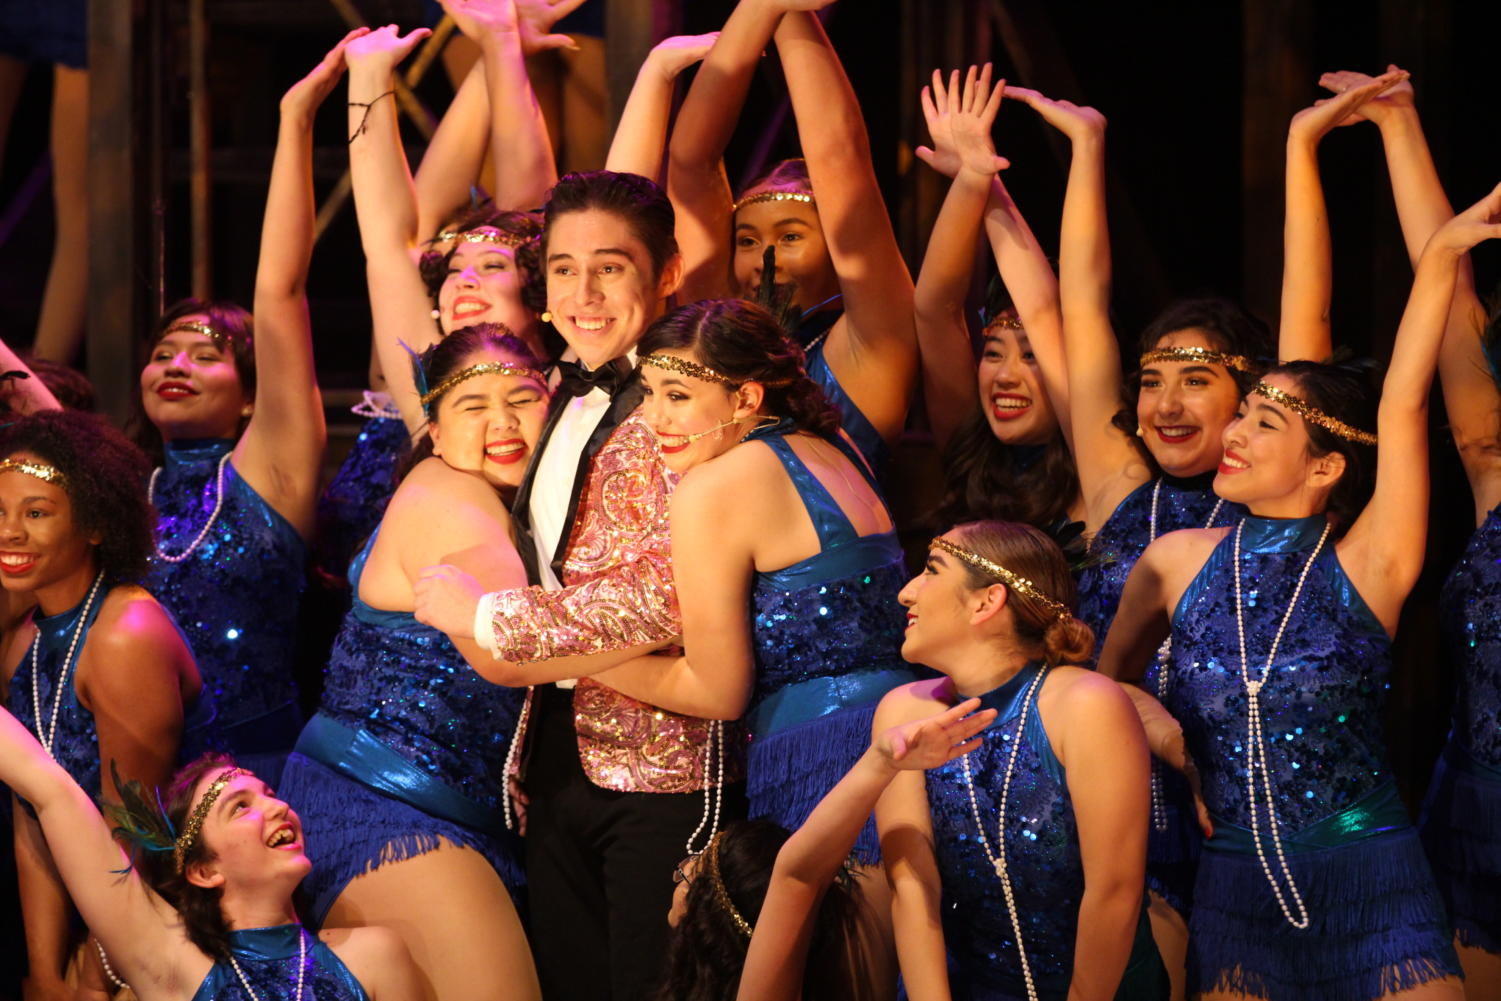 Senior Jonathan Macedo preforms in Chicago. Macedo has preformed in several musicals at Akins including Rock of Ages and Hairspray and is also involved in theatre outside of school with Zach Scott Theatre Pre-Profesional Company.